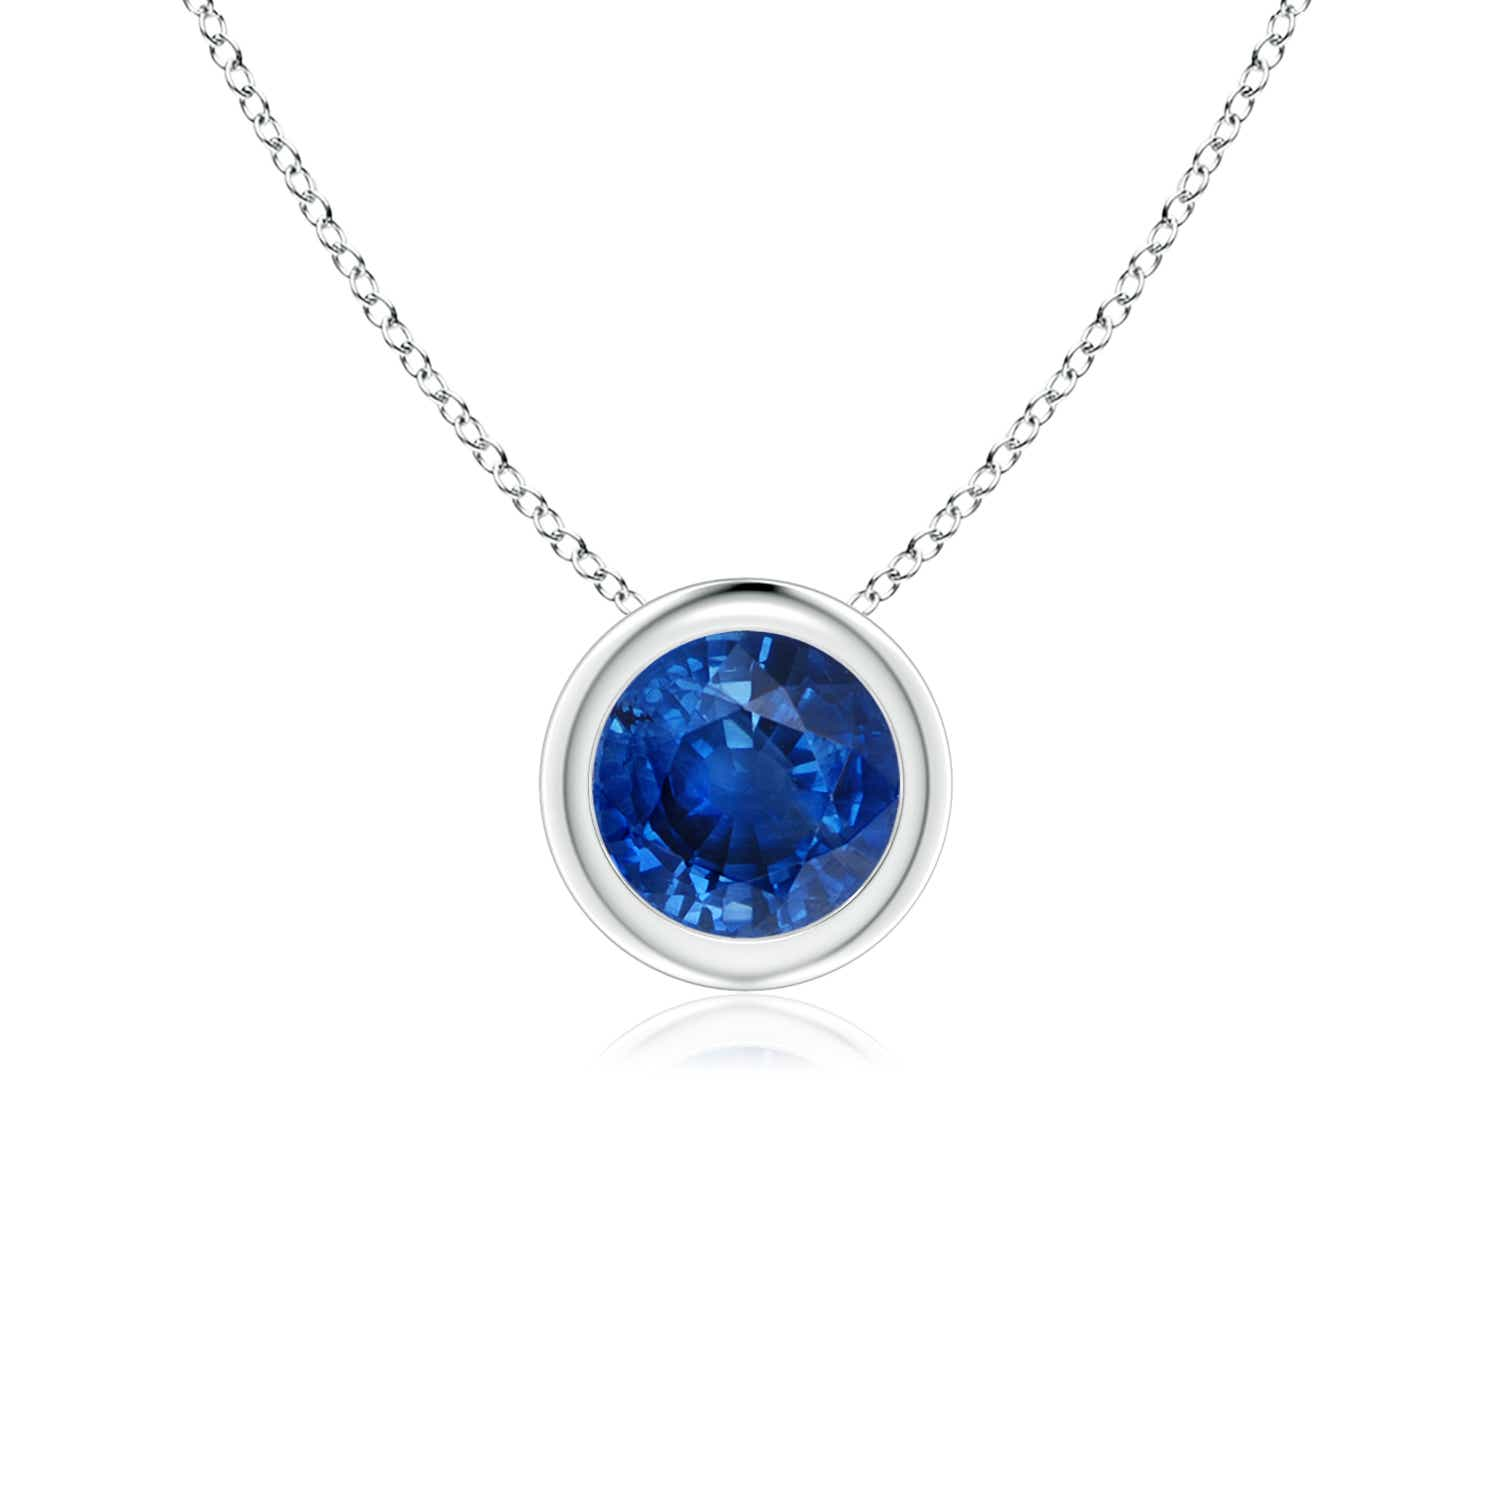 Other Fine Pins & Brooches Fine Jewelry 14k Antique Sapphire And Pearl Pendant Fixing Prices According To Quality Of Products